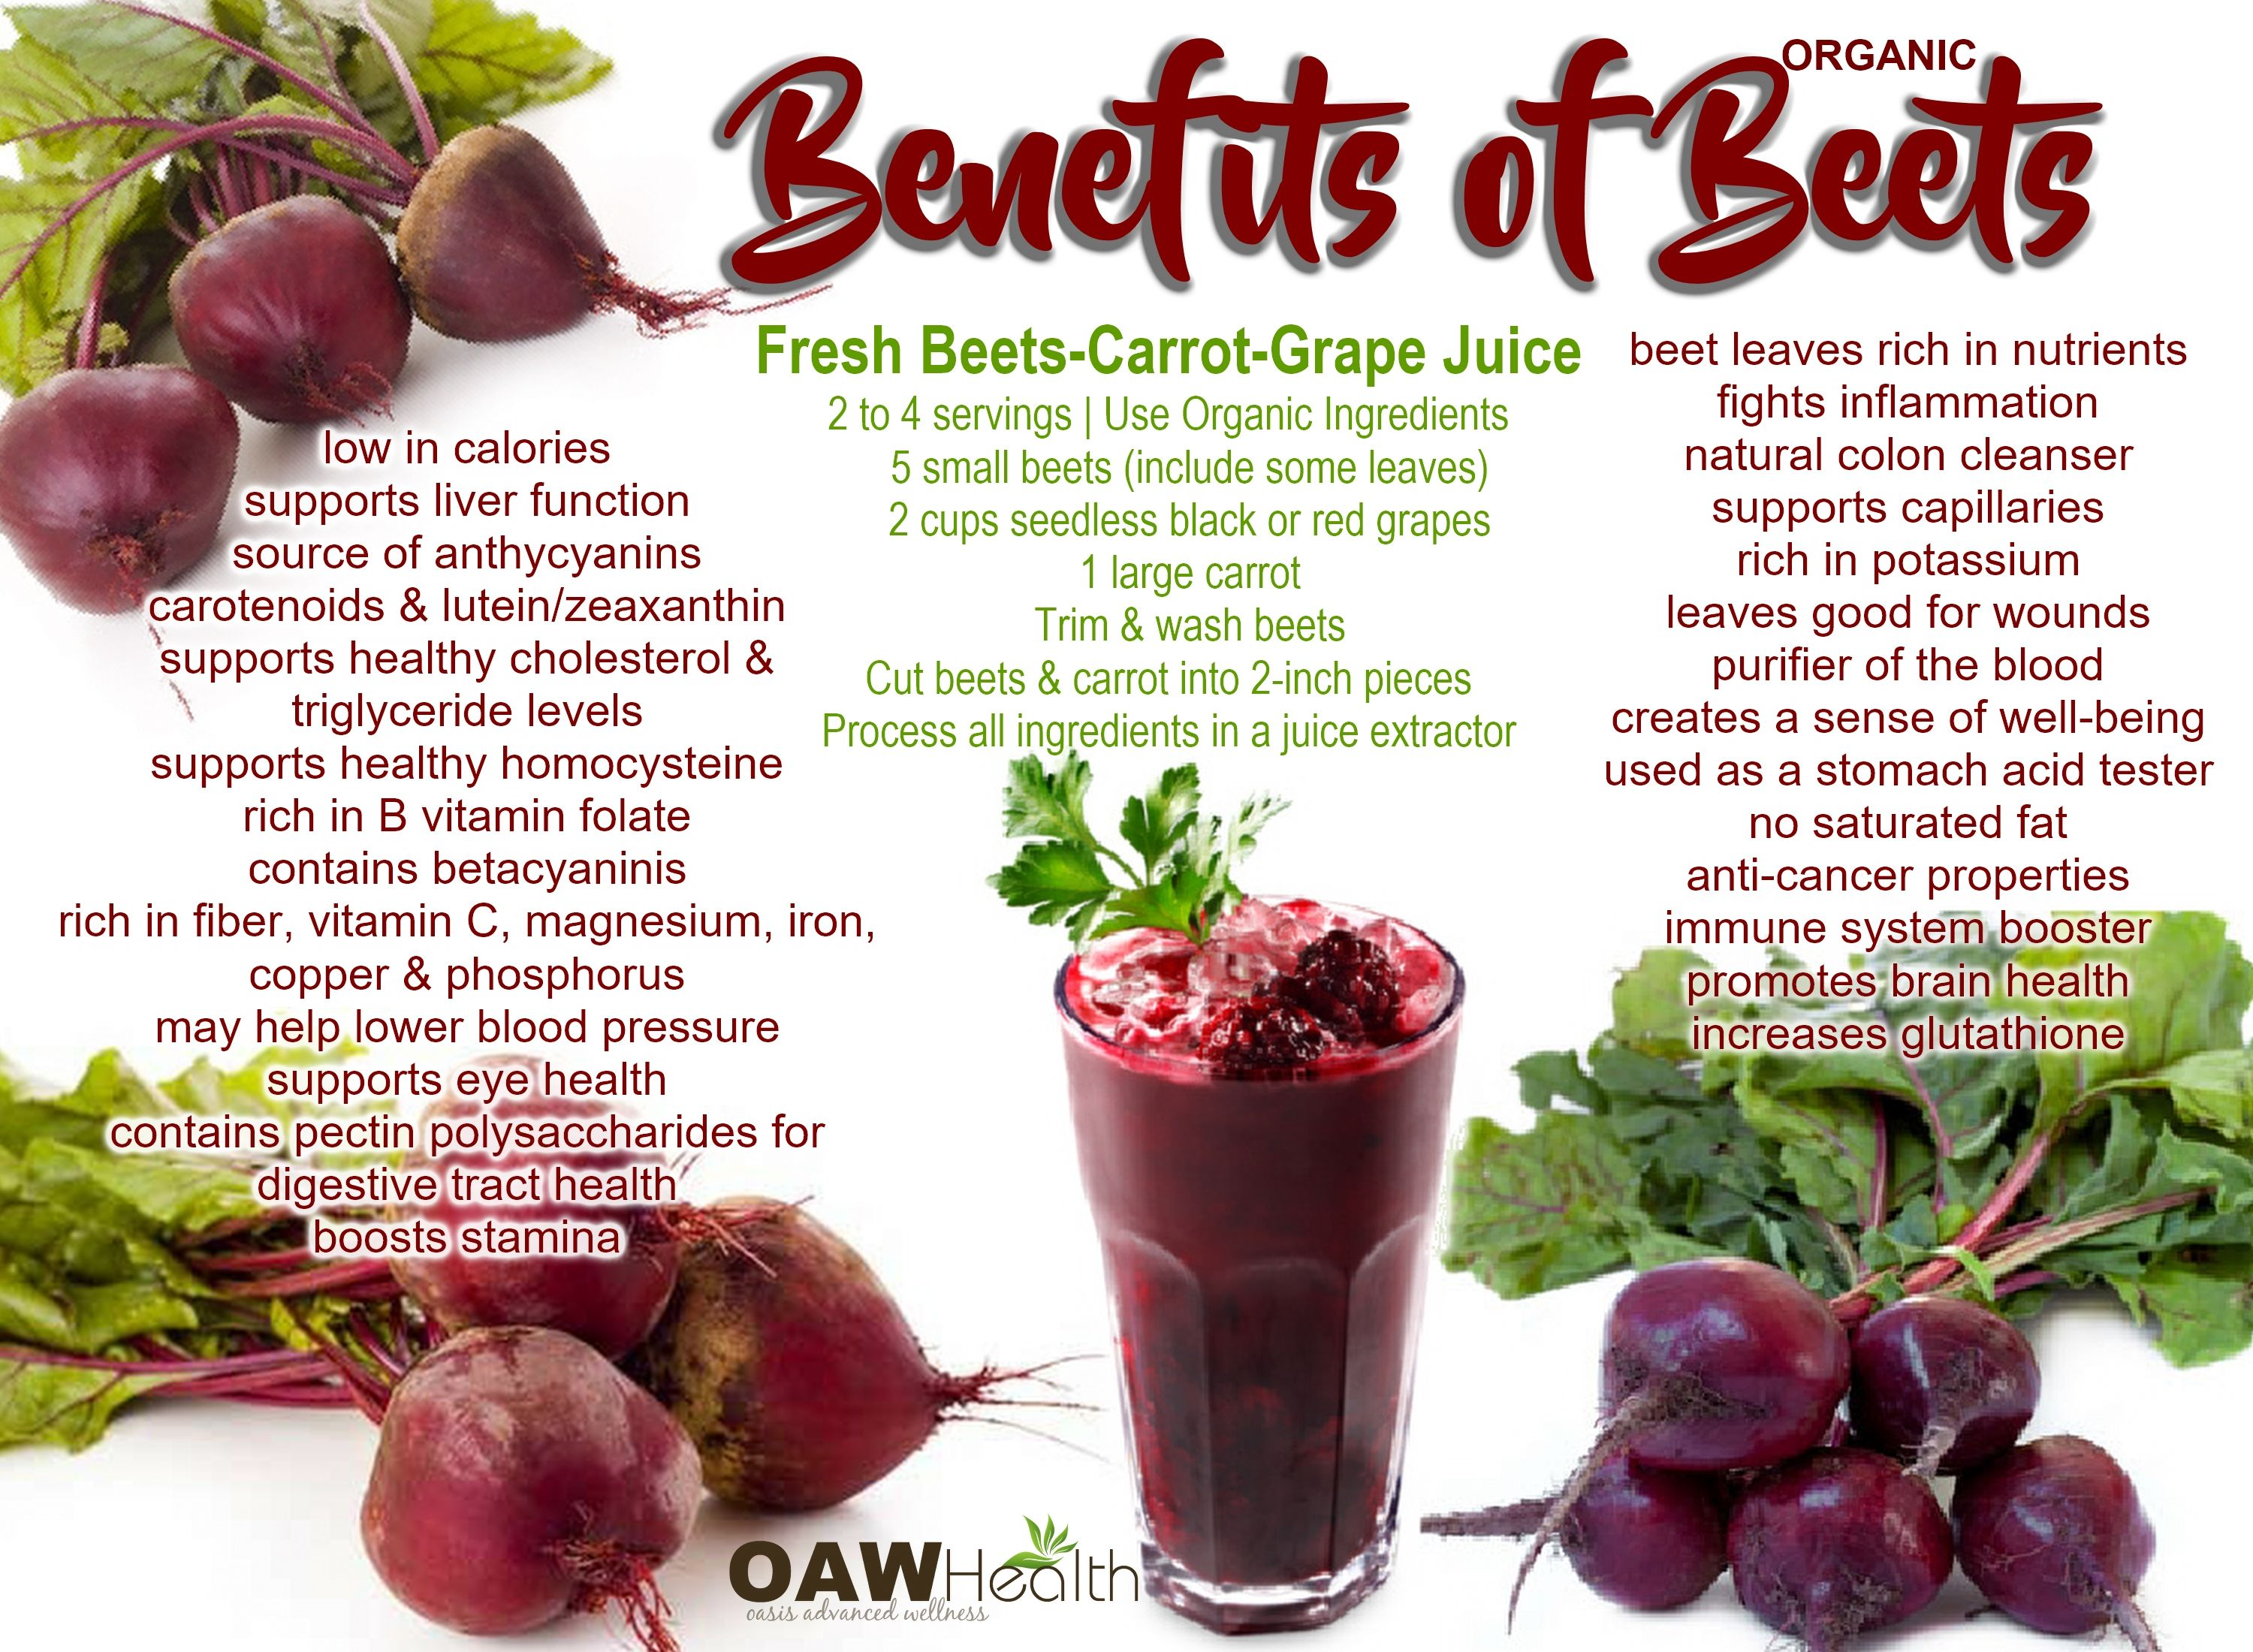 Beet juice: the benefits and harm of the usual drink 83